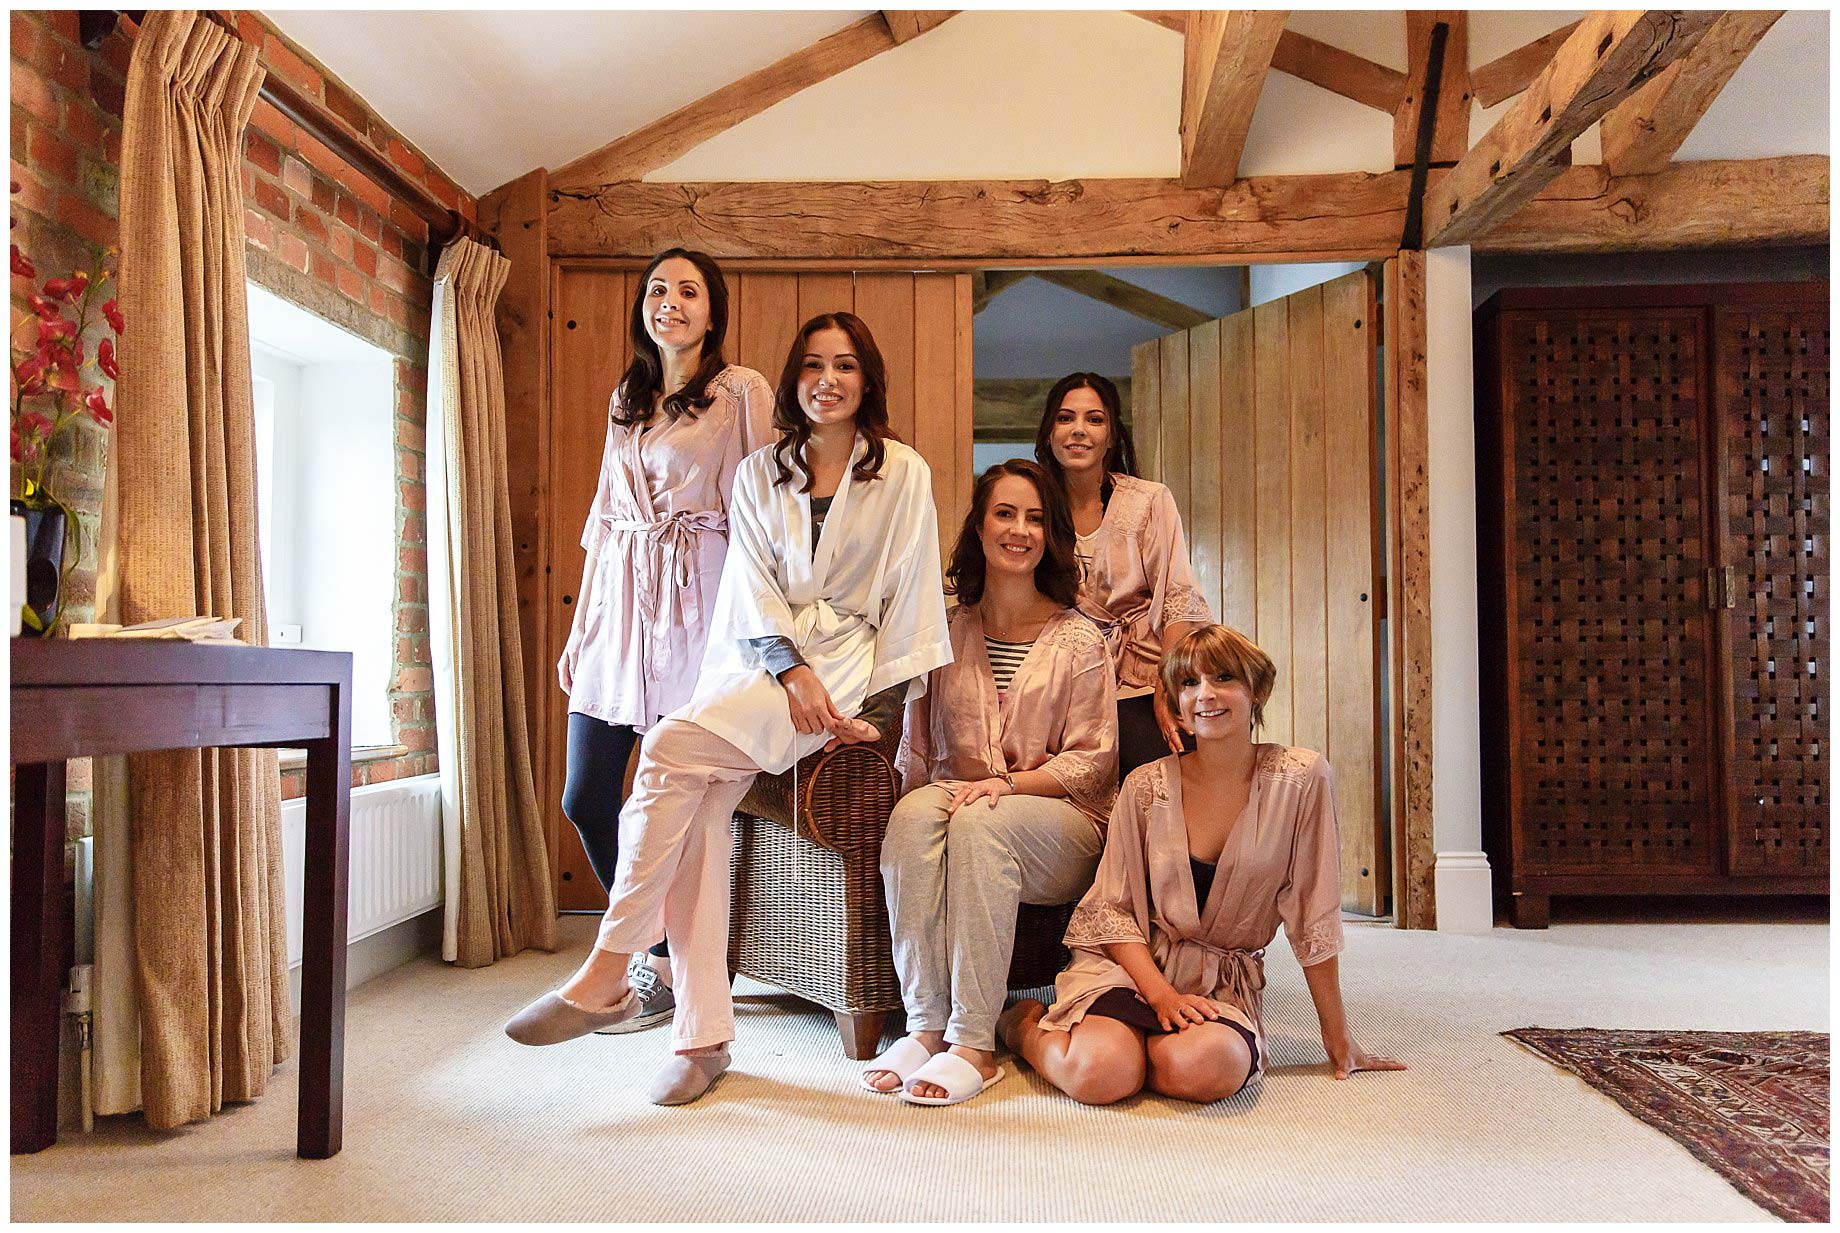 girls in dressing gowns pose for the camera